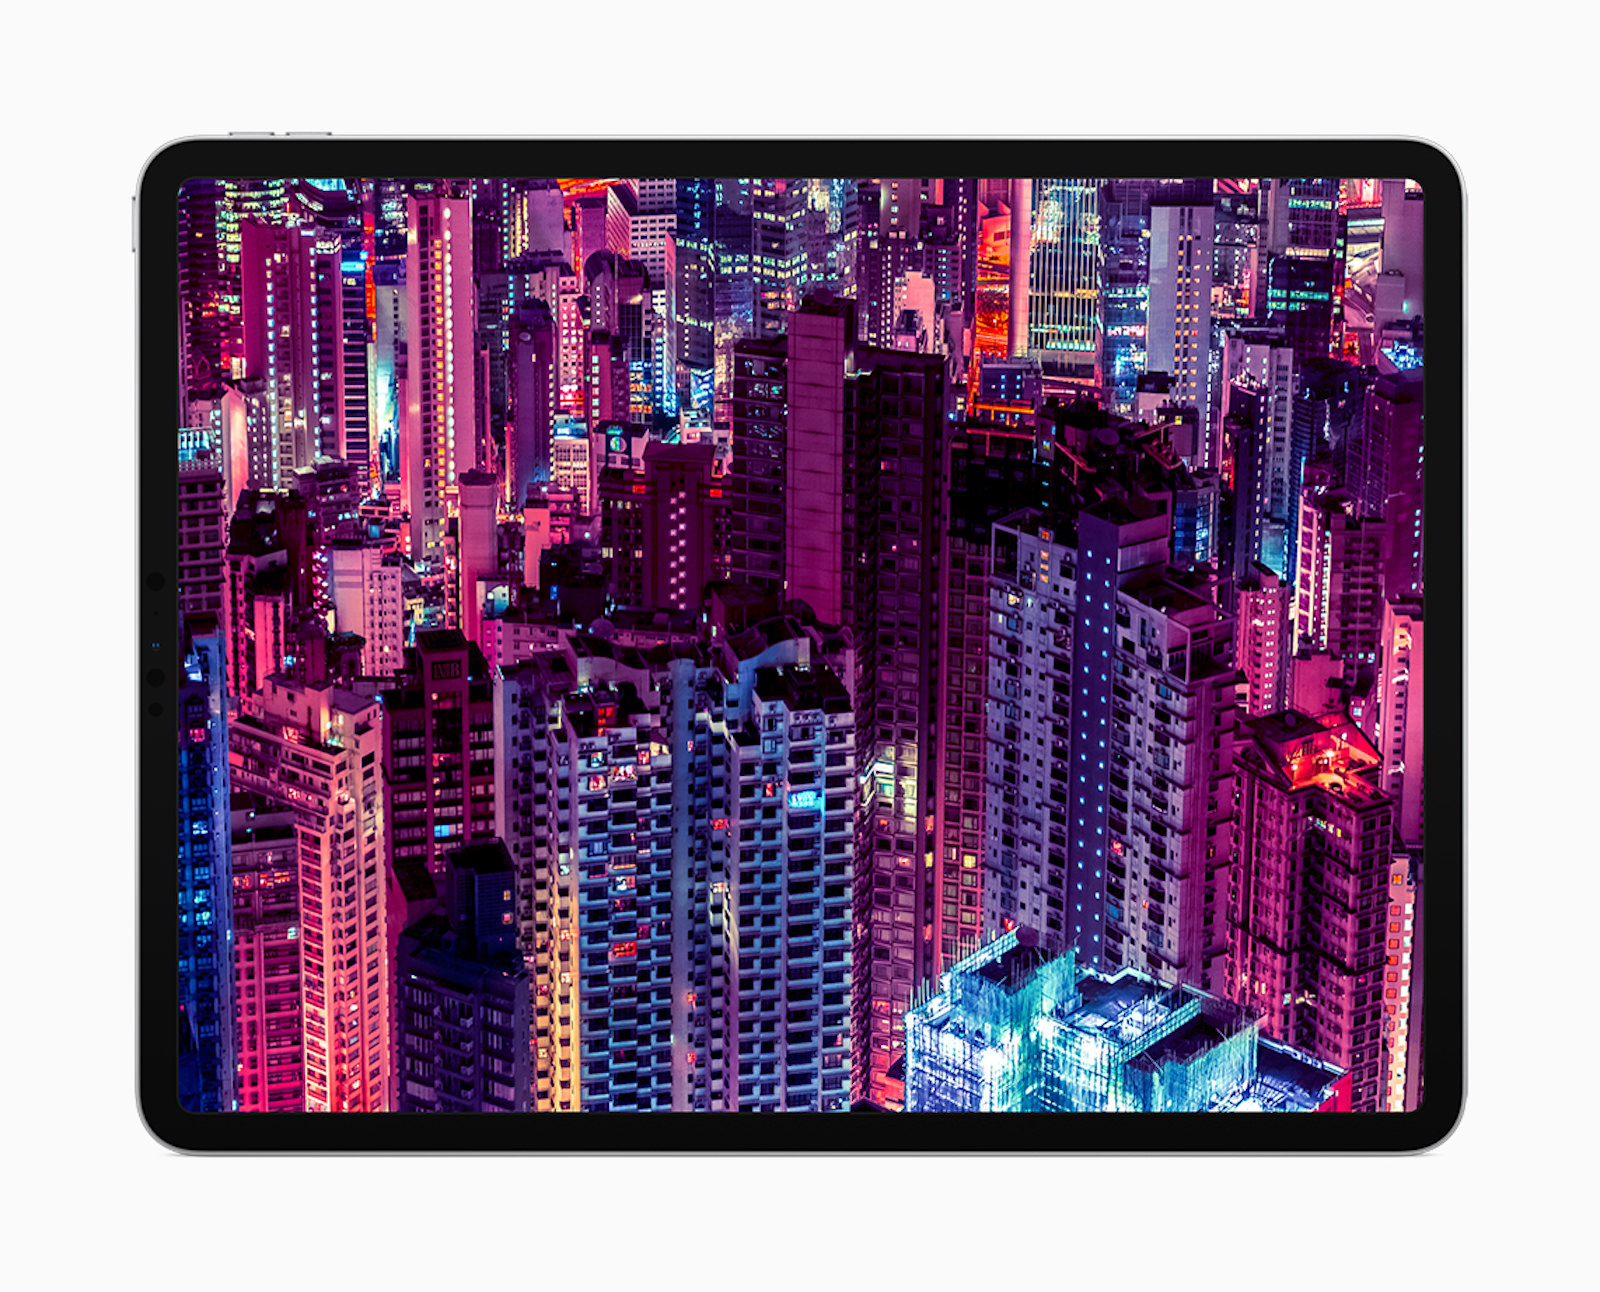 IPad Pro edge to edge retina 10302018